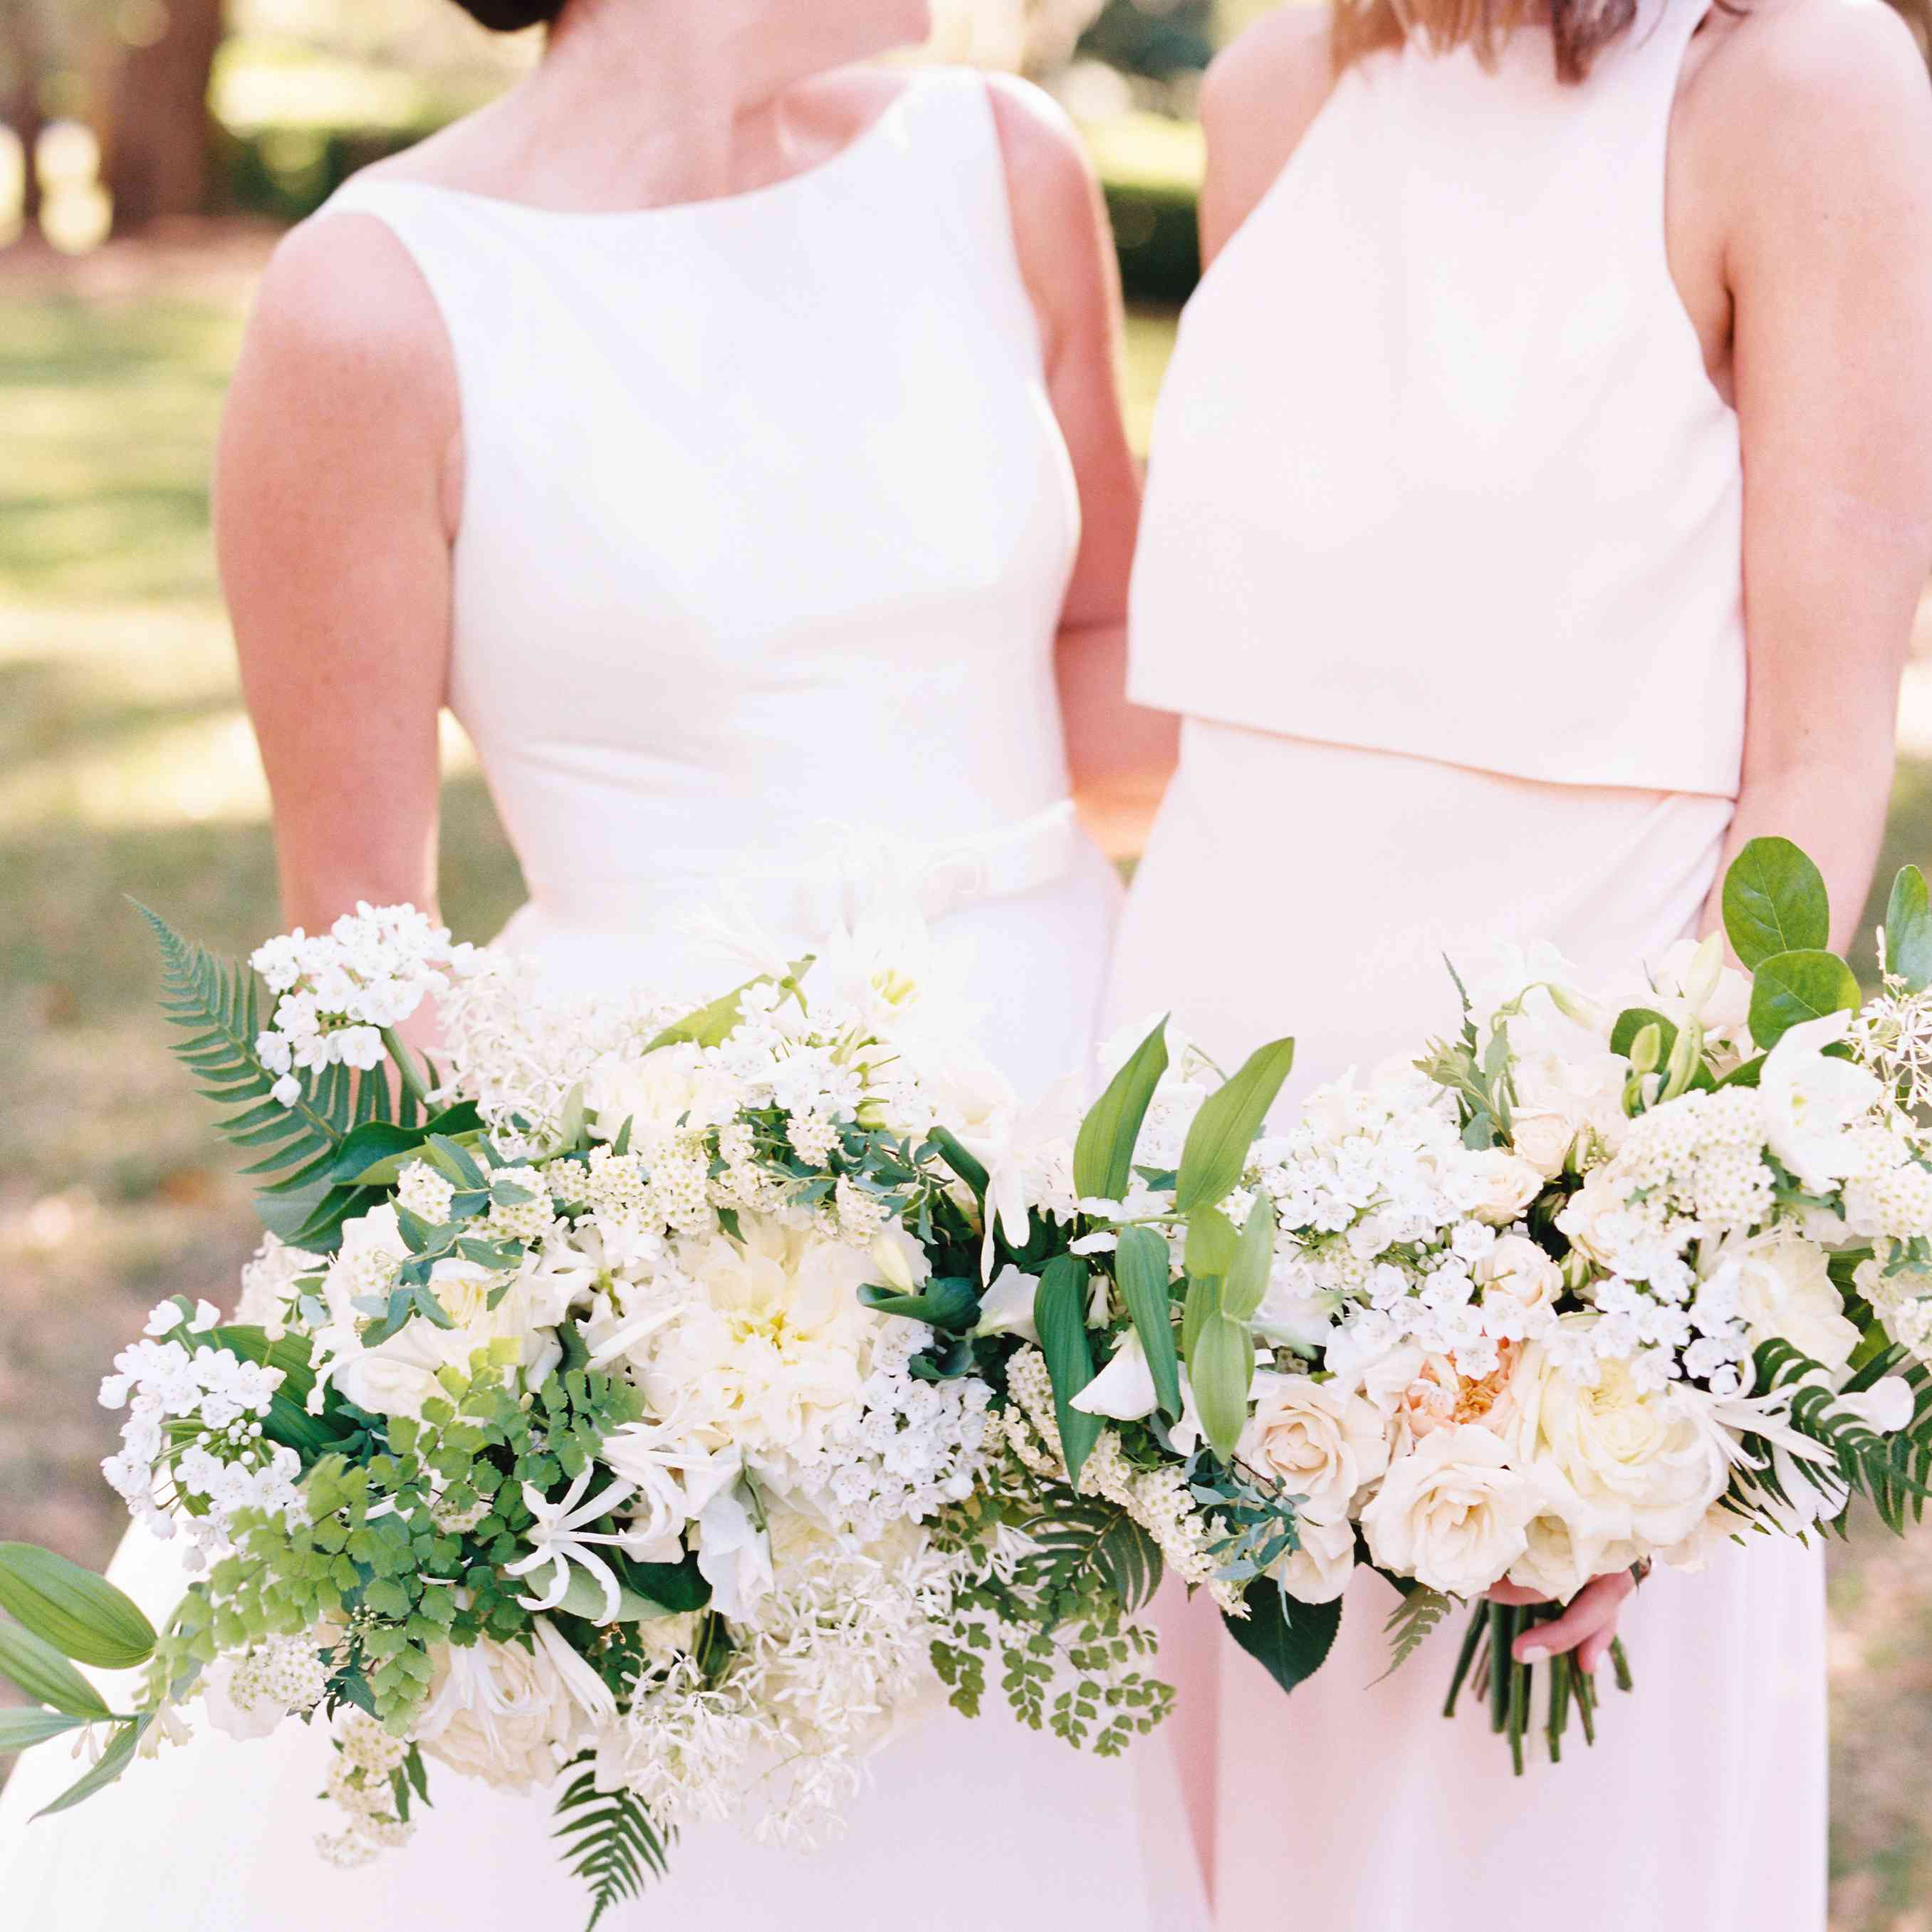 Bride laughing with bridesmaid friend